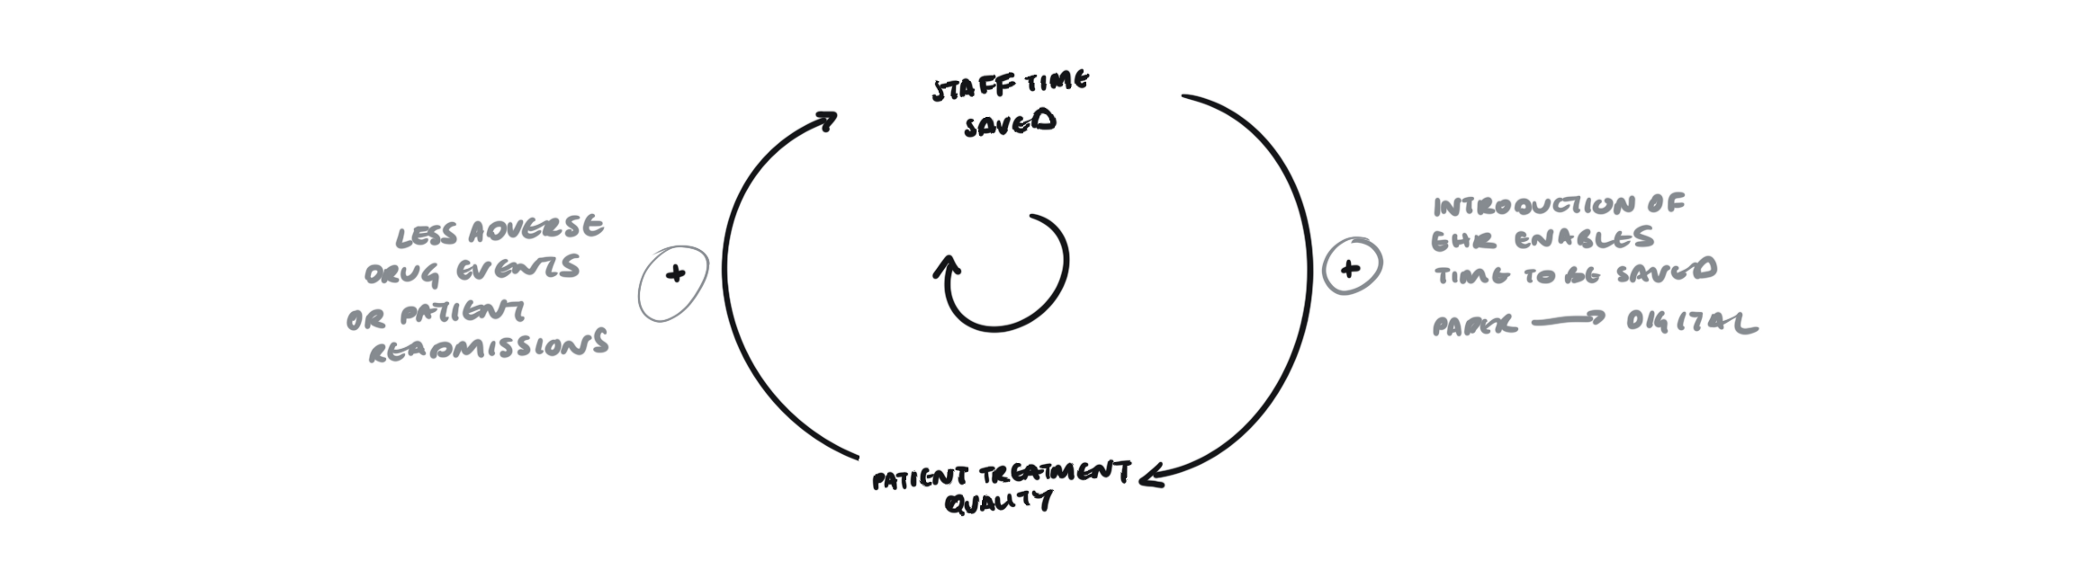 Diagram of a reinforcing feedback loop that shows the effects of introducing an Electronic Health Record or EHR.